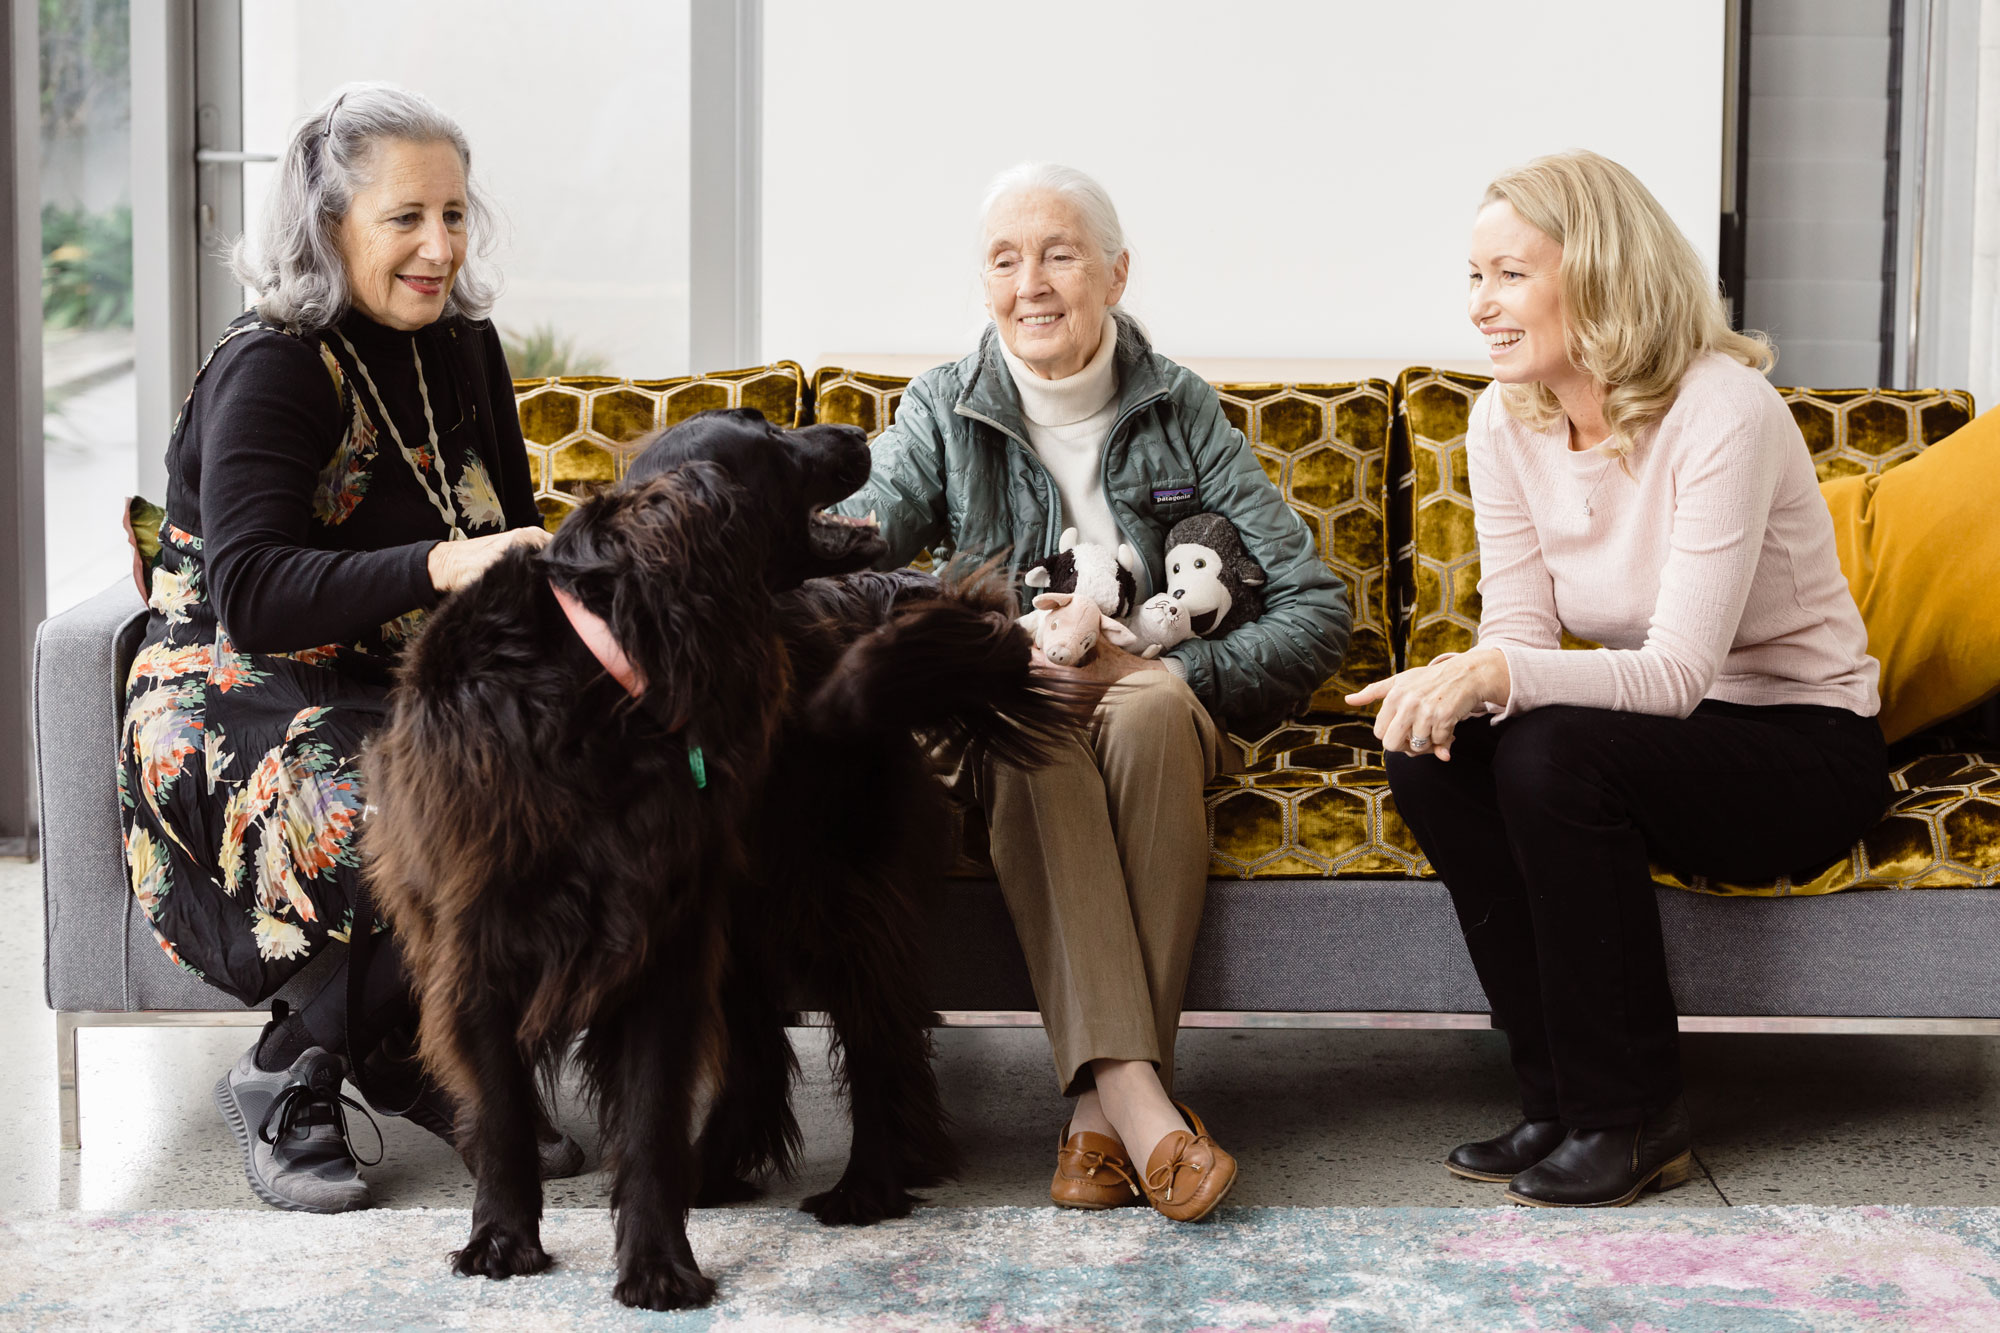 Melanie Vivian (right) CEO of the Jane Goodall Institute of New Zealand, with her mother and family dog greeting Jane.